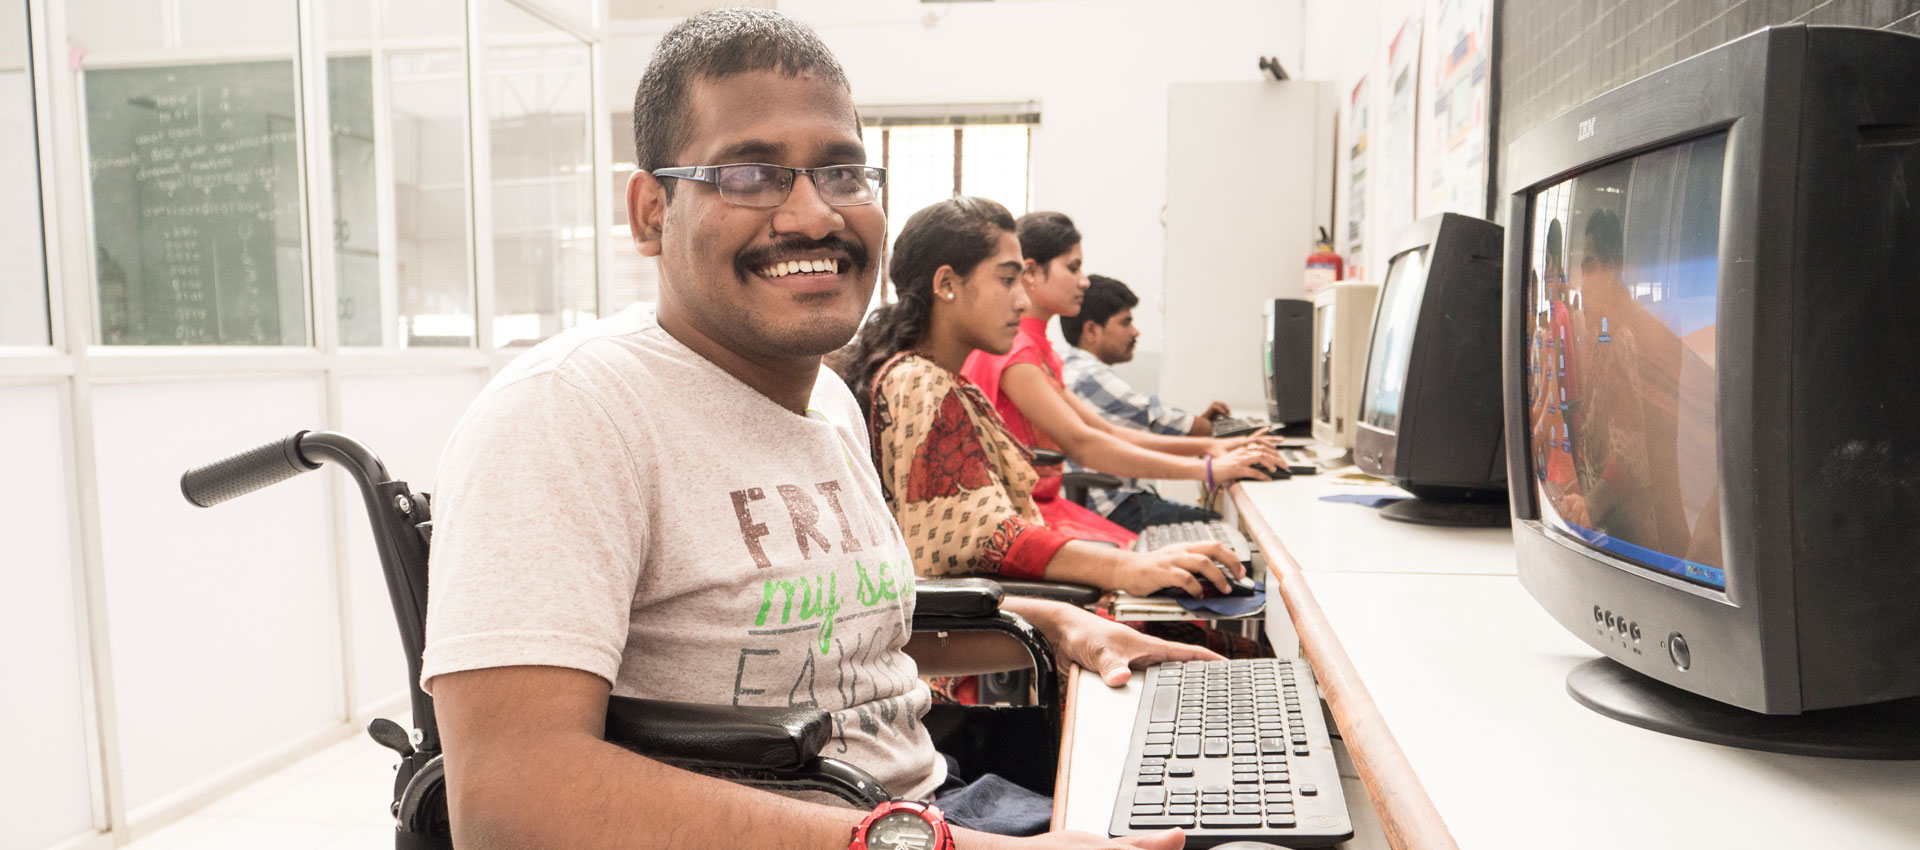 Careers for physically disabled